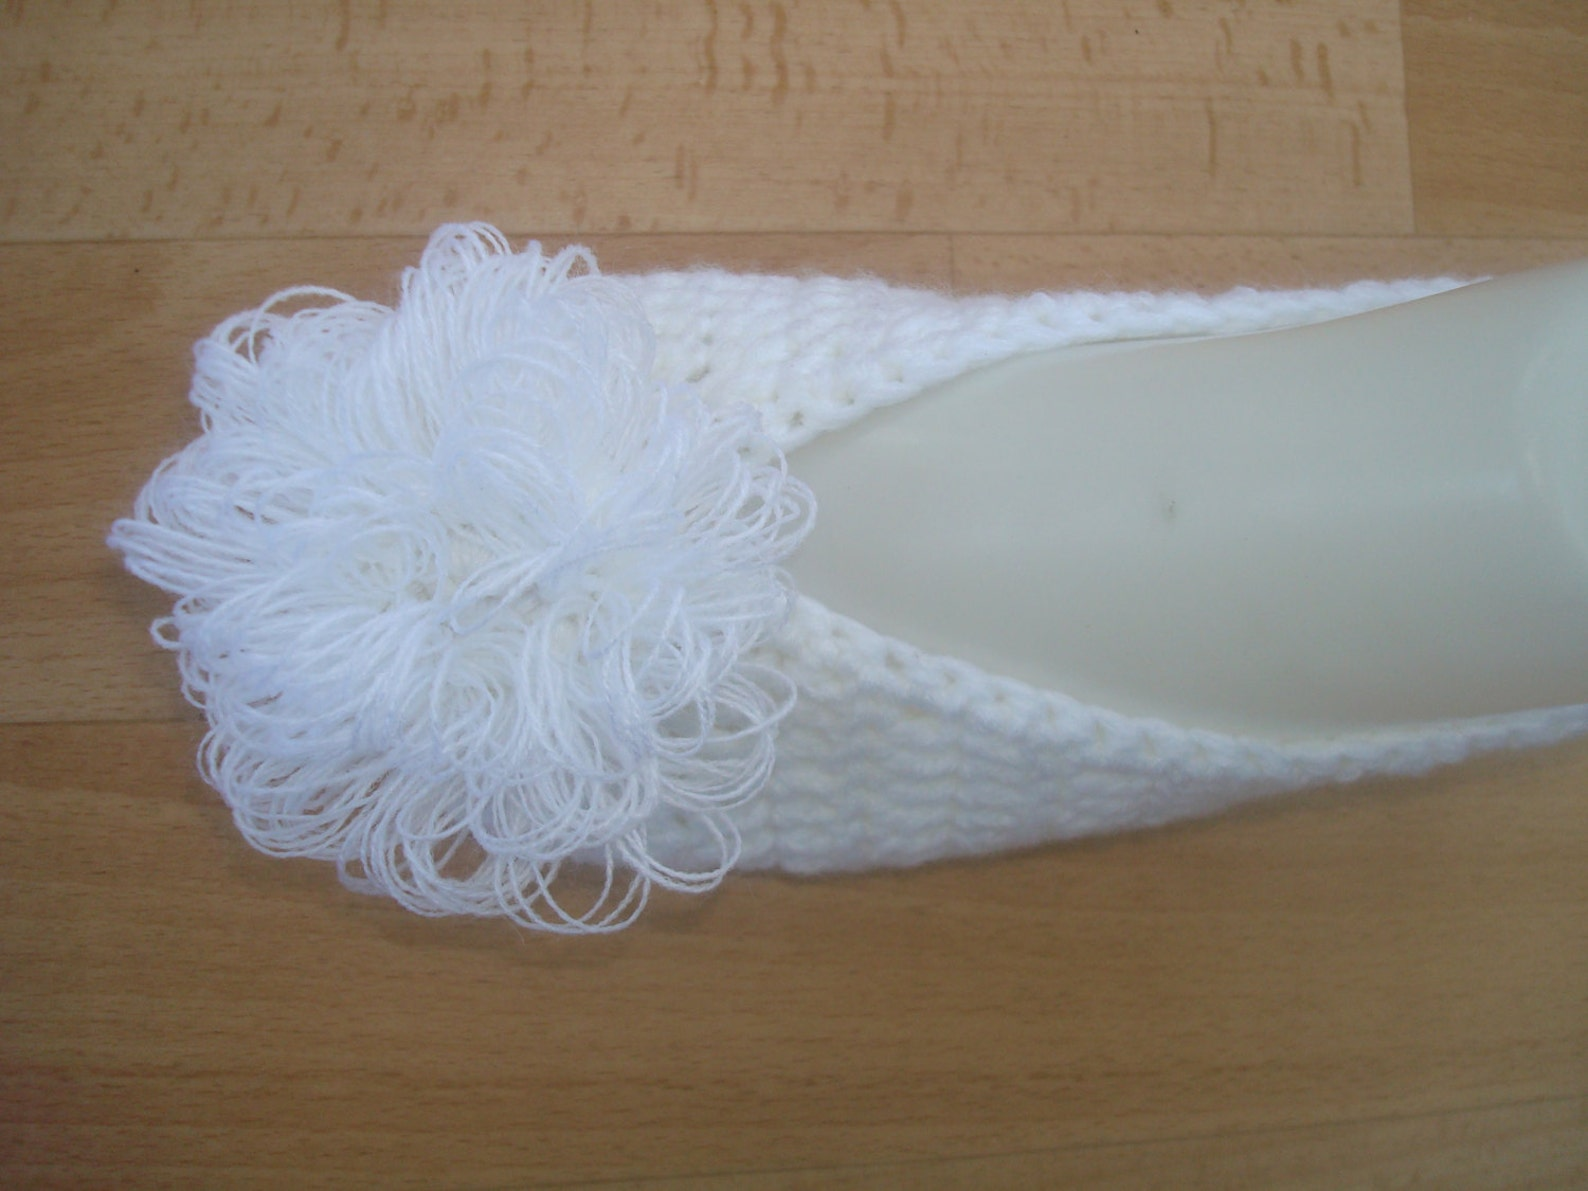 bridal wedding dance slippers, white crochet bride shoes, ladies ballet flats, womens white slippers with flower, beautiful eleg